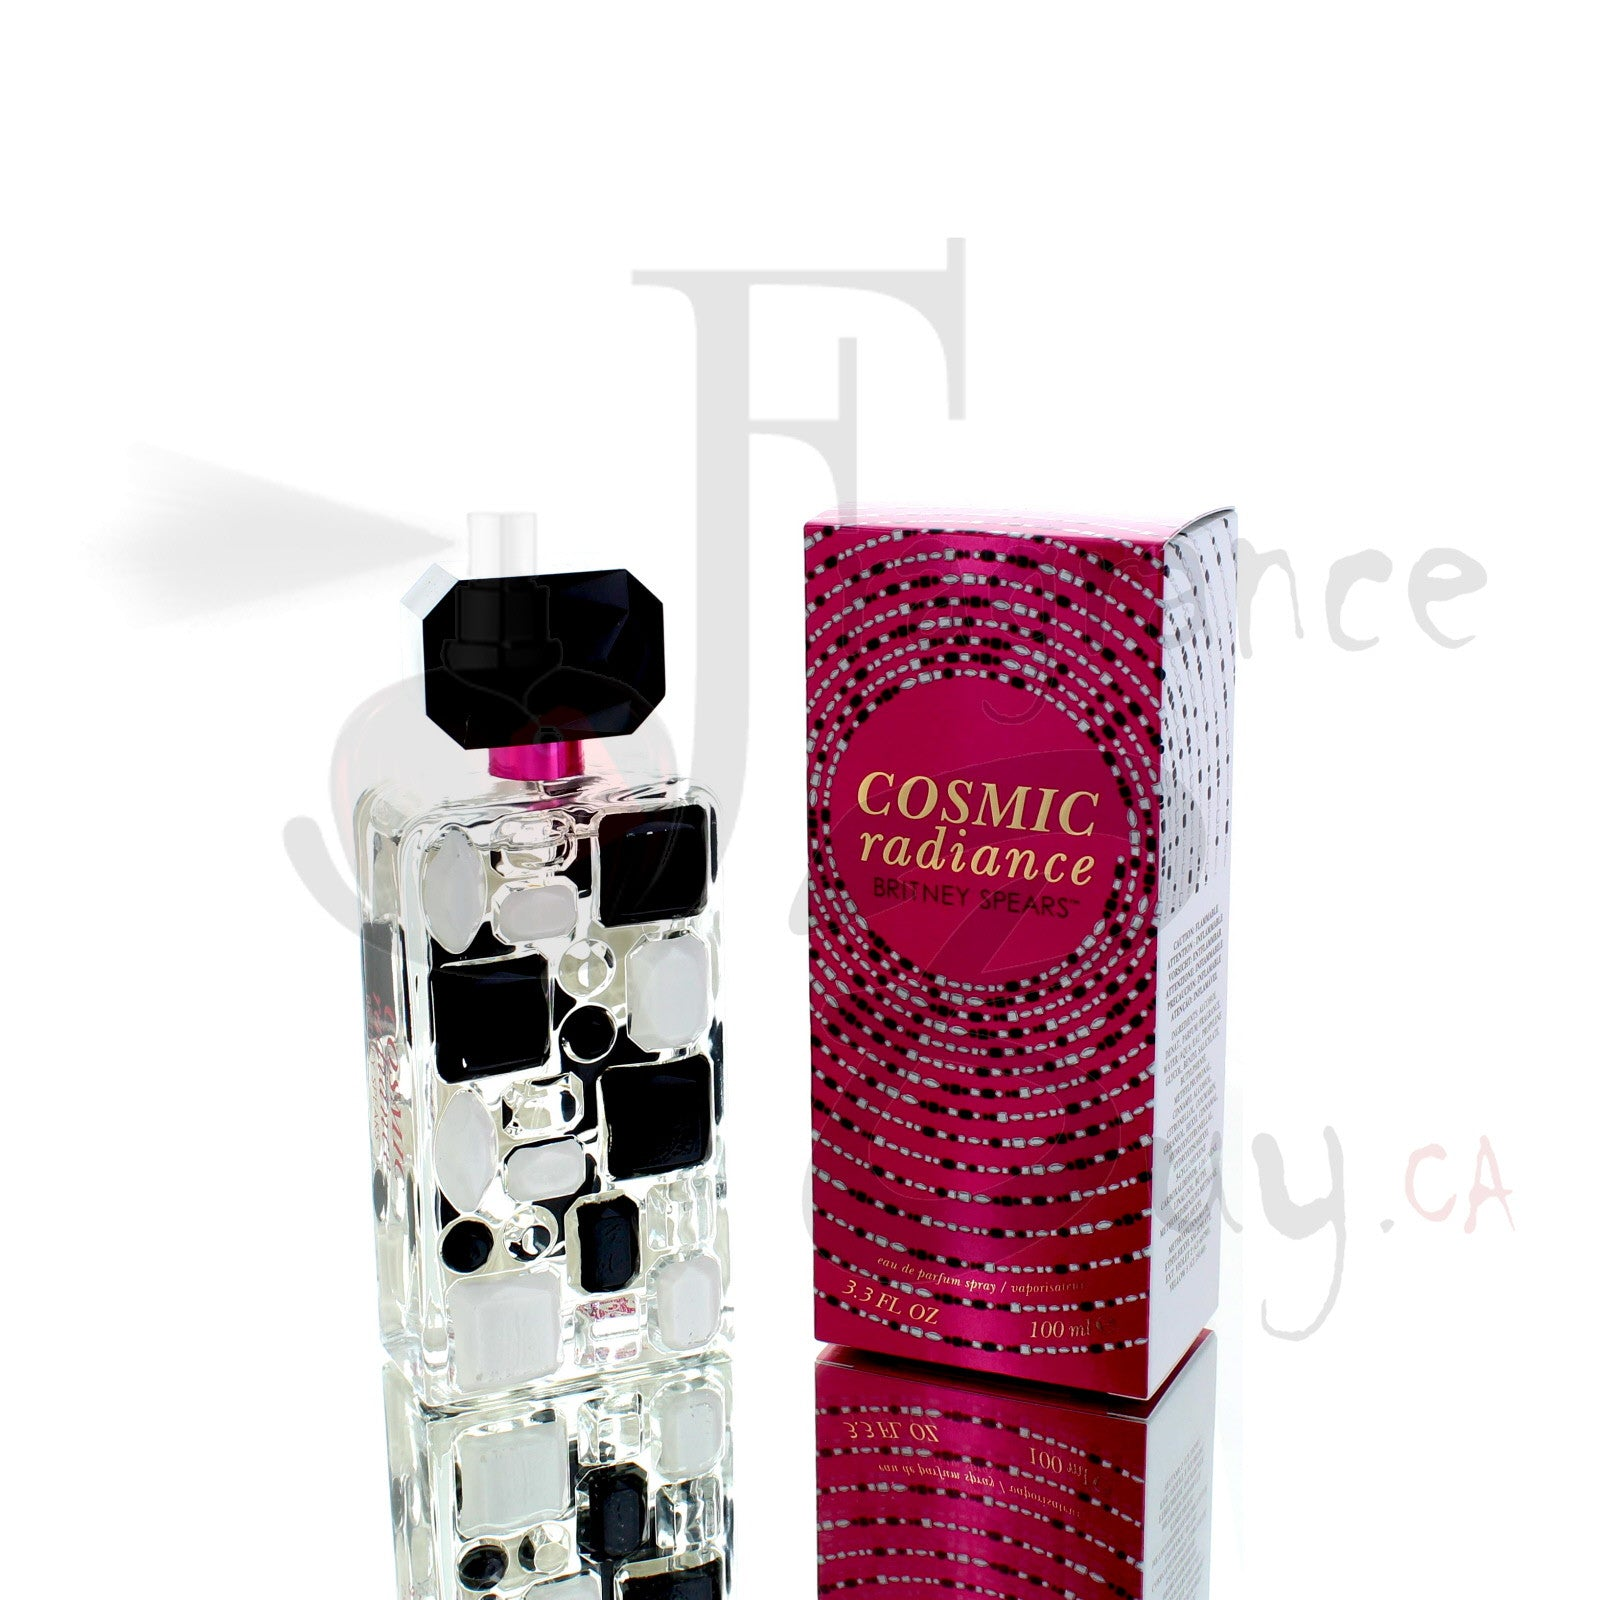 Britney Spears Cosmic Radiance For Woman